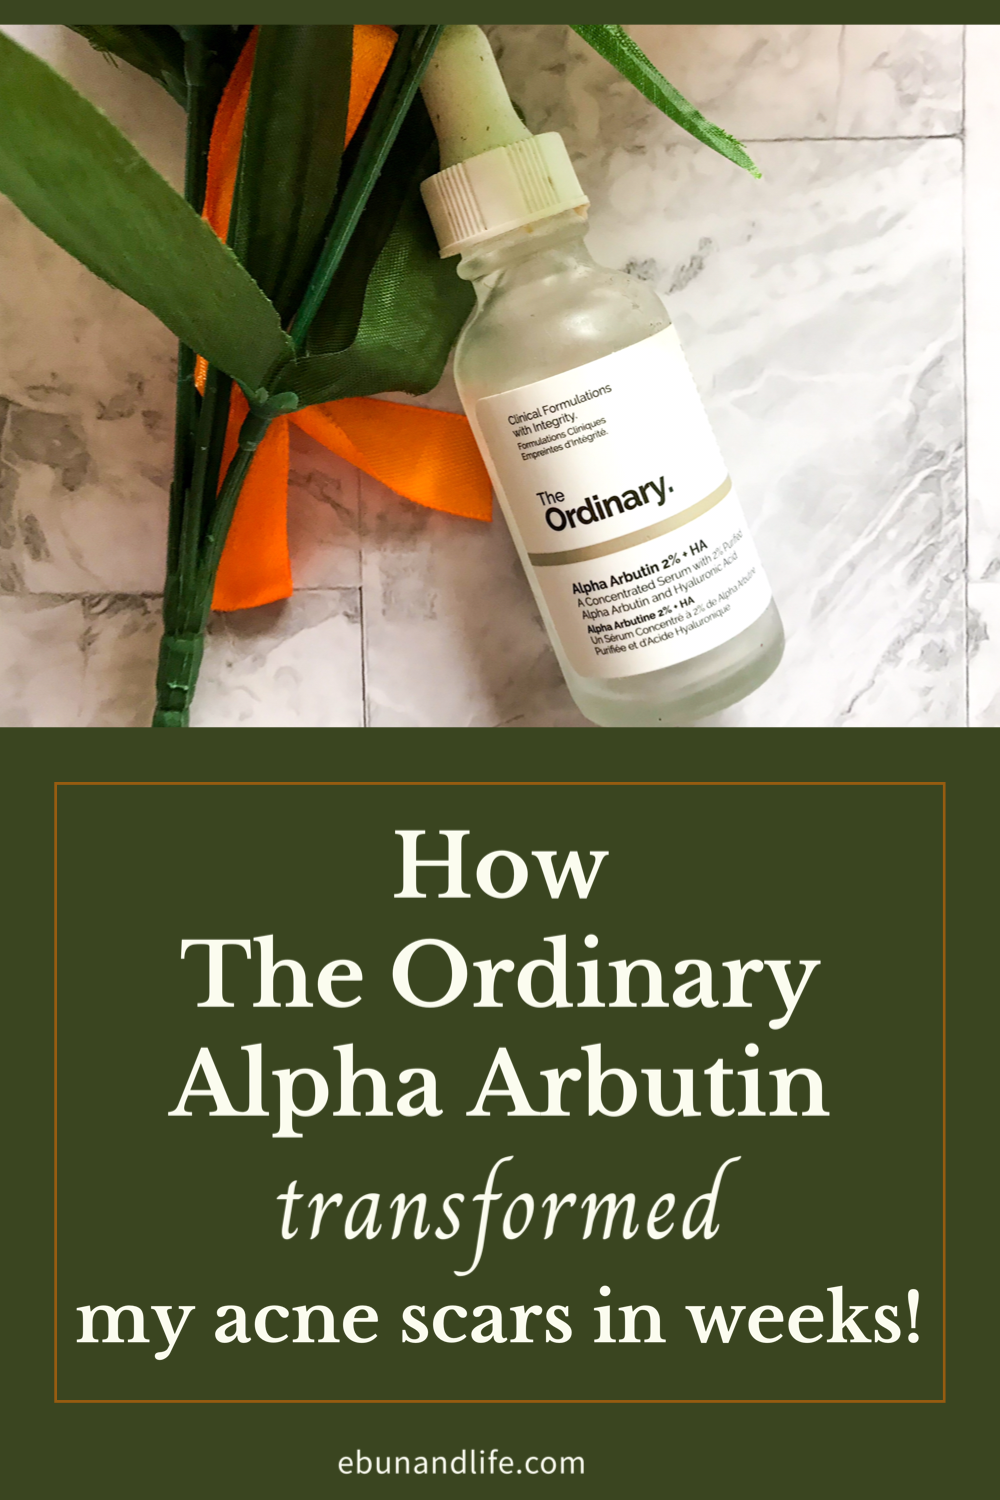 The Ordinary Skincare Routine Alpha Arbutin for